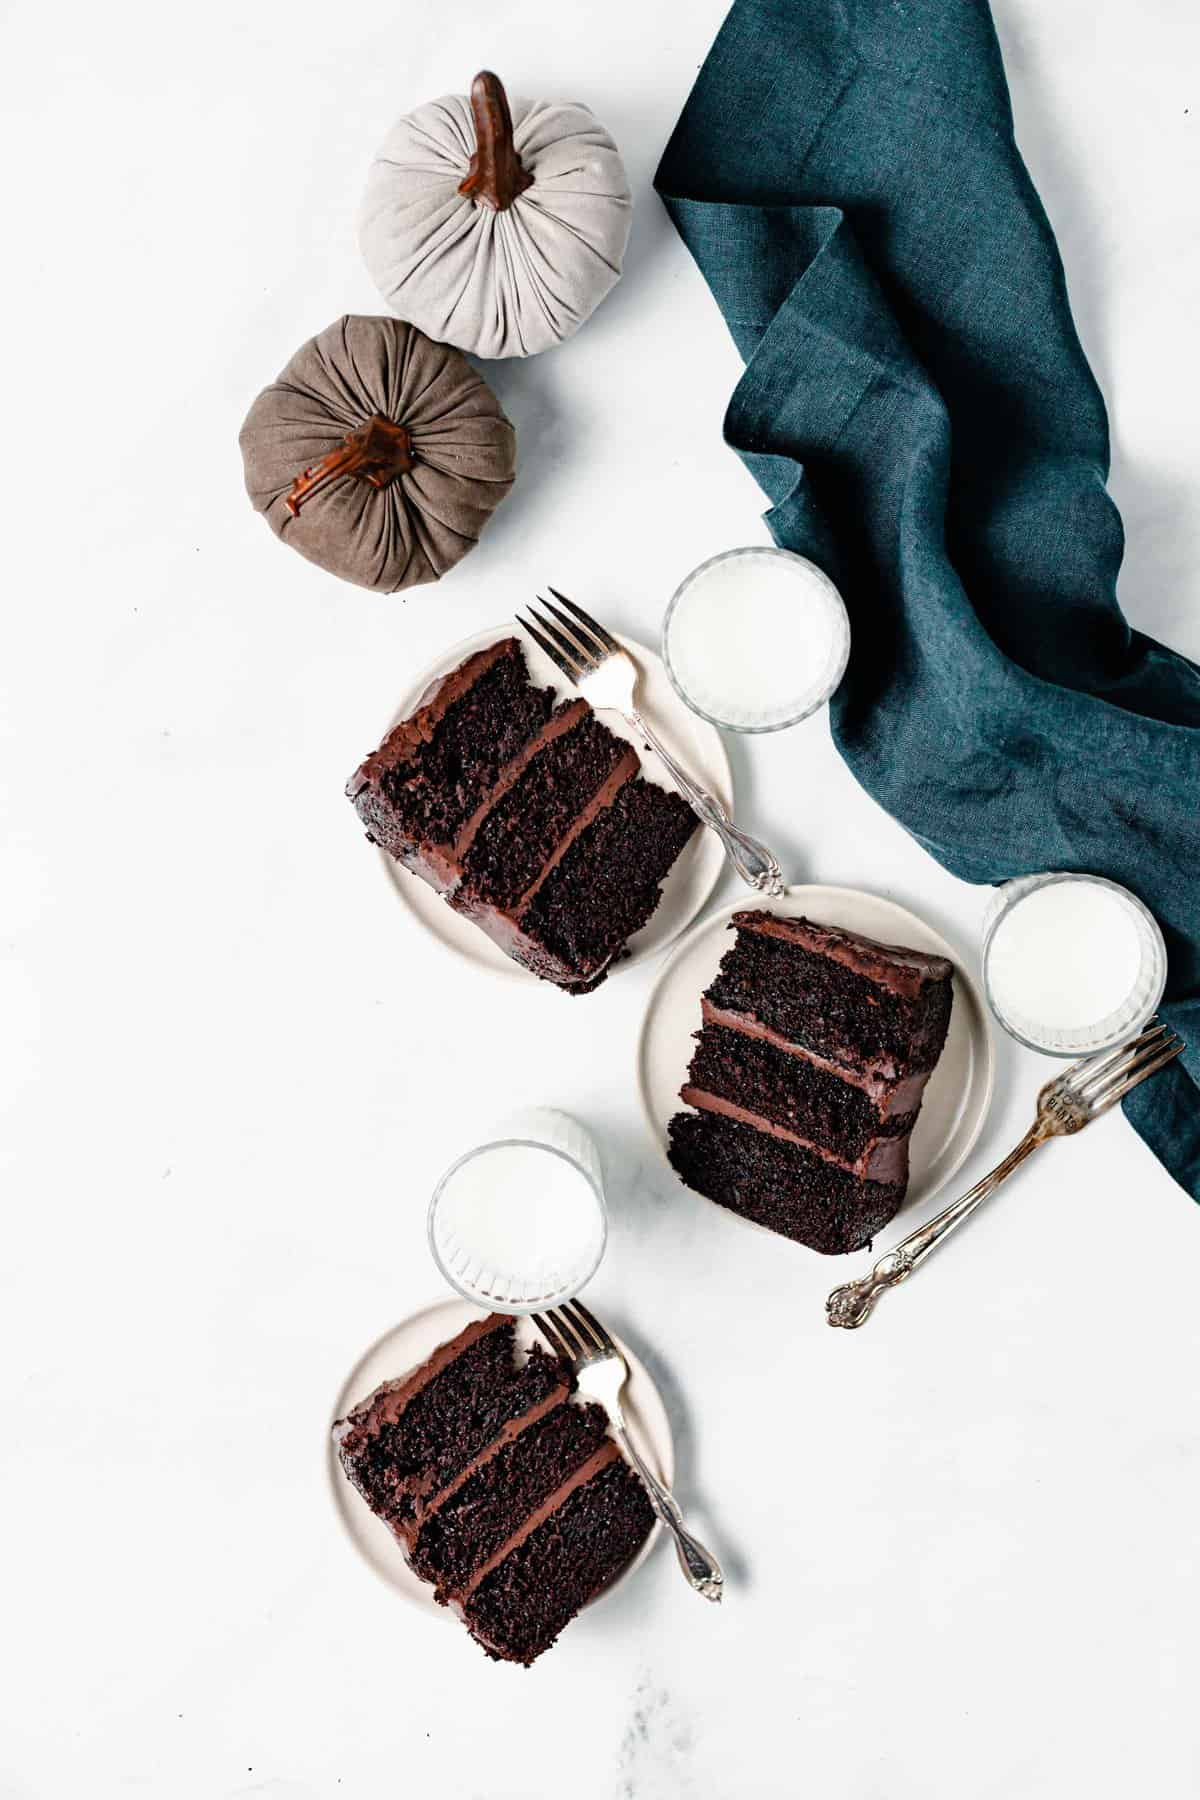 slices of chocolate cake